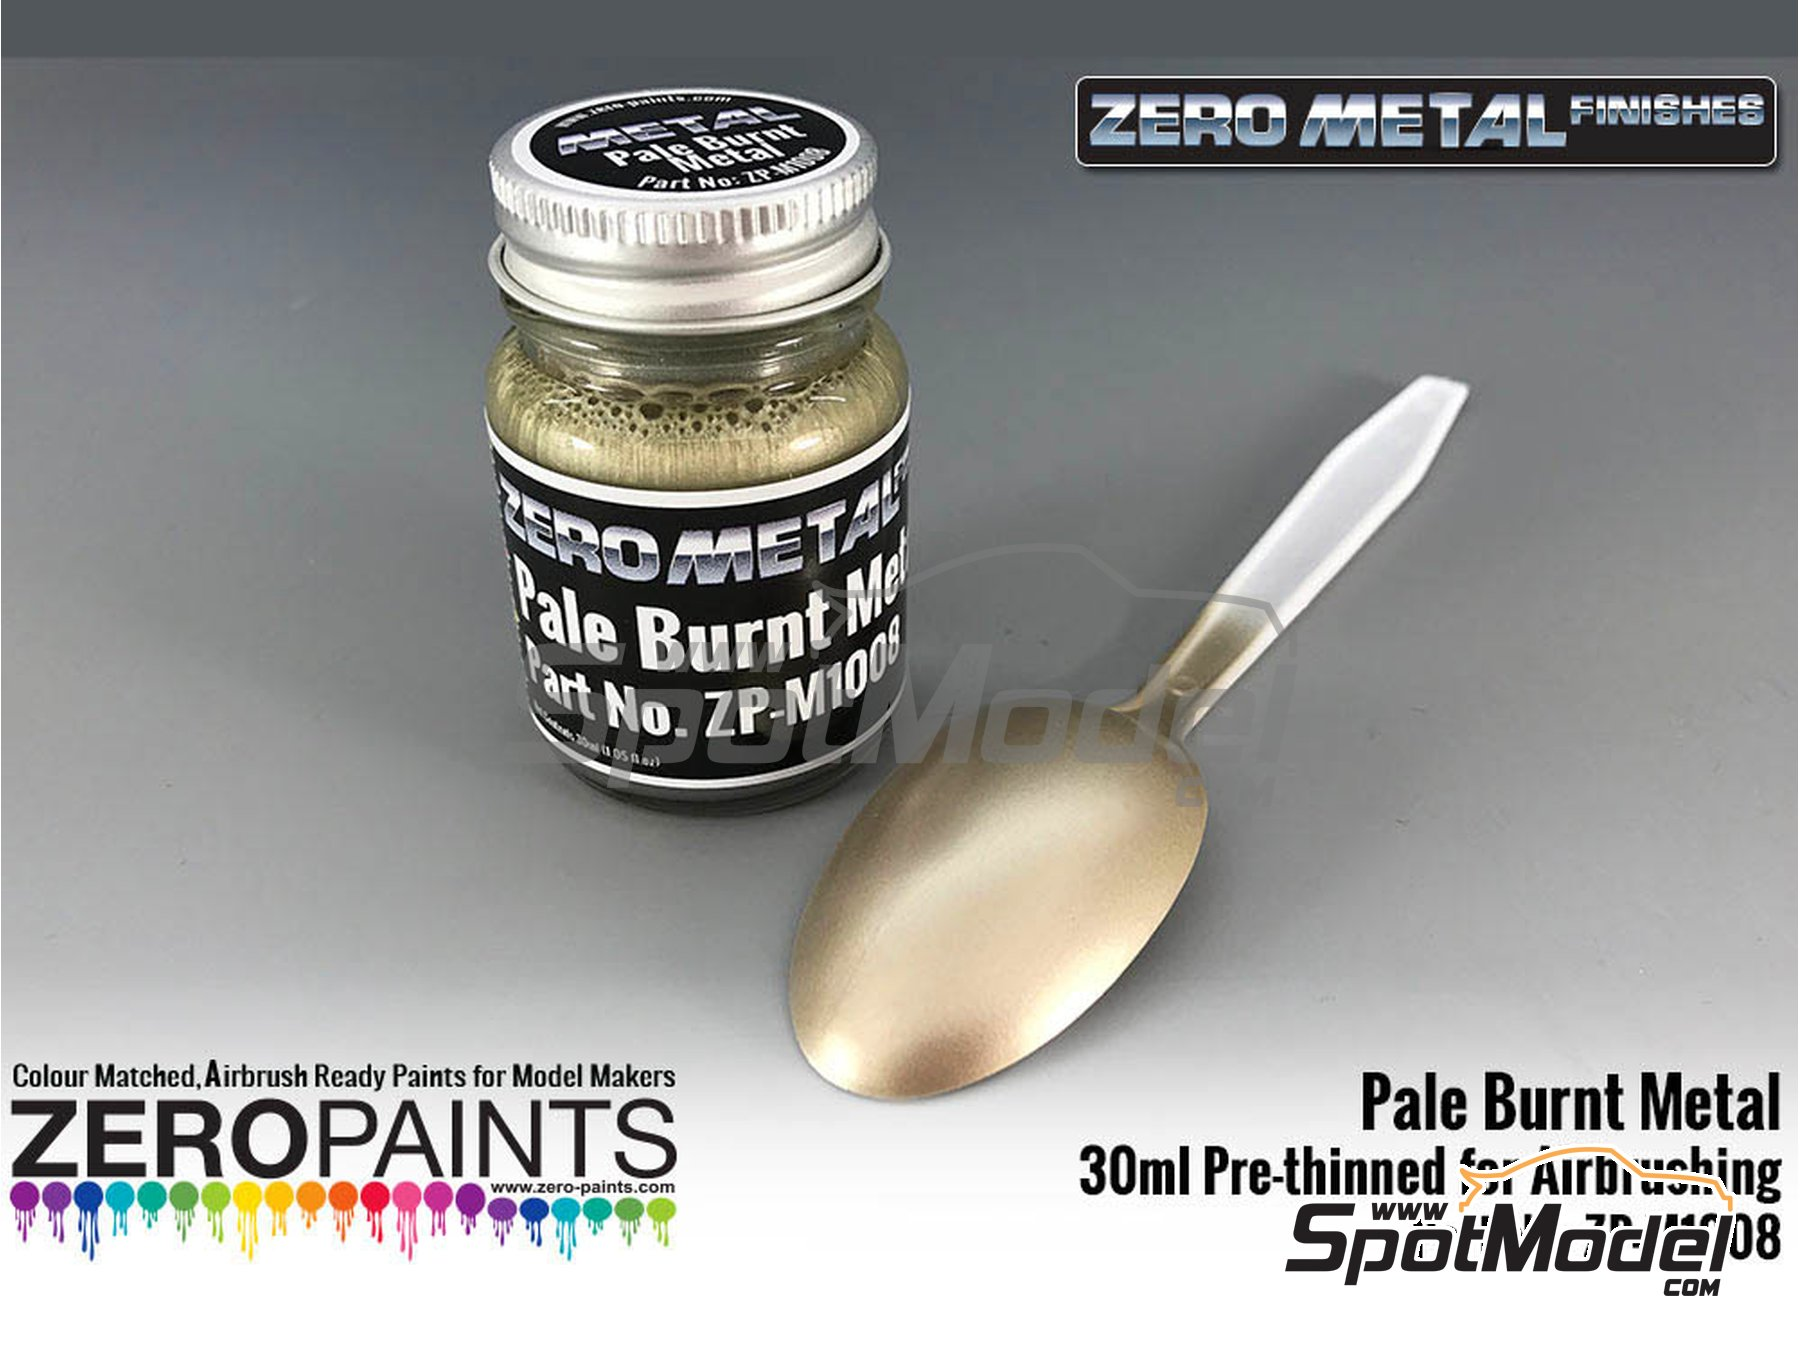 Image 1: Pale burnt metal | Paint manufactured by Zero Paints (ref. ZP-M1008)